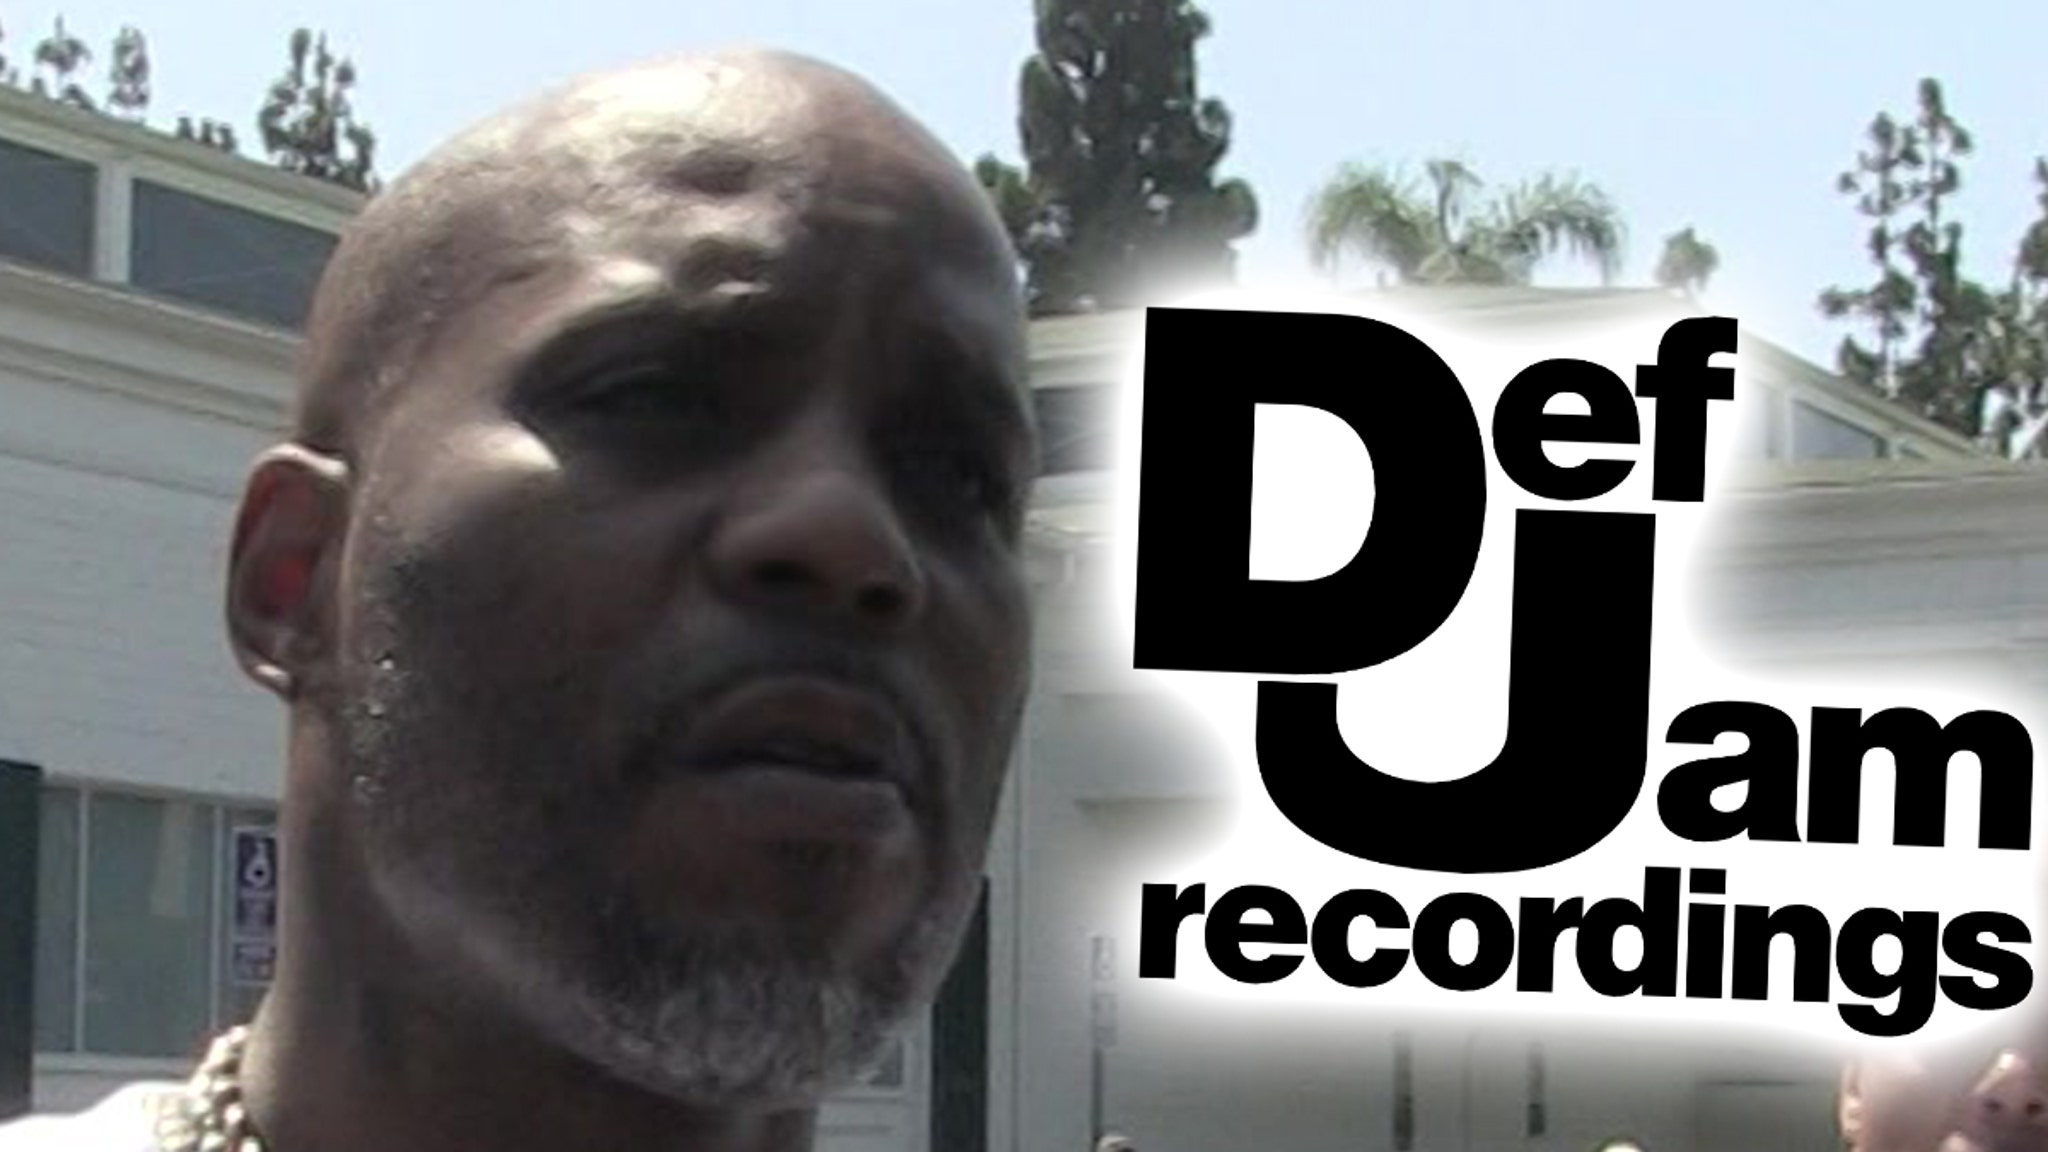 Def Jam Covered DMX's Funeral Costs, Shelled Out $35k - TMZ